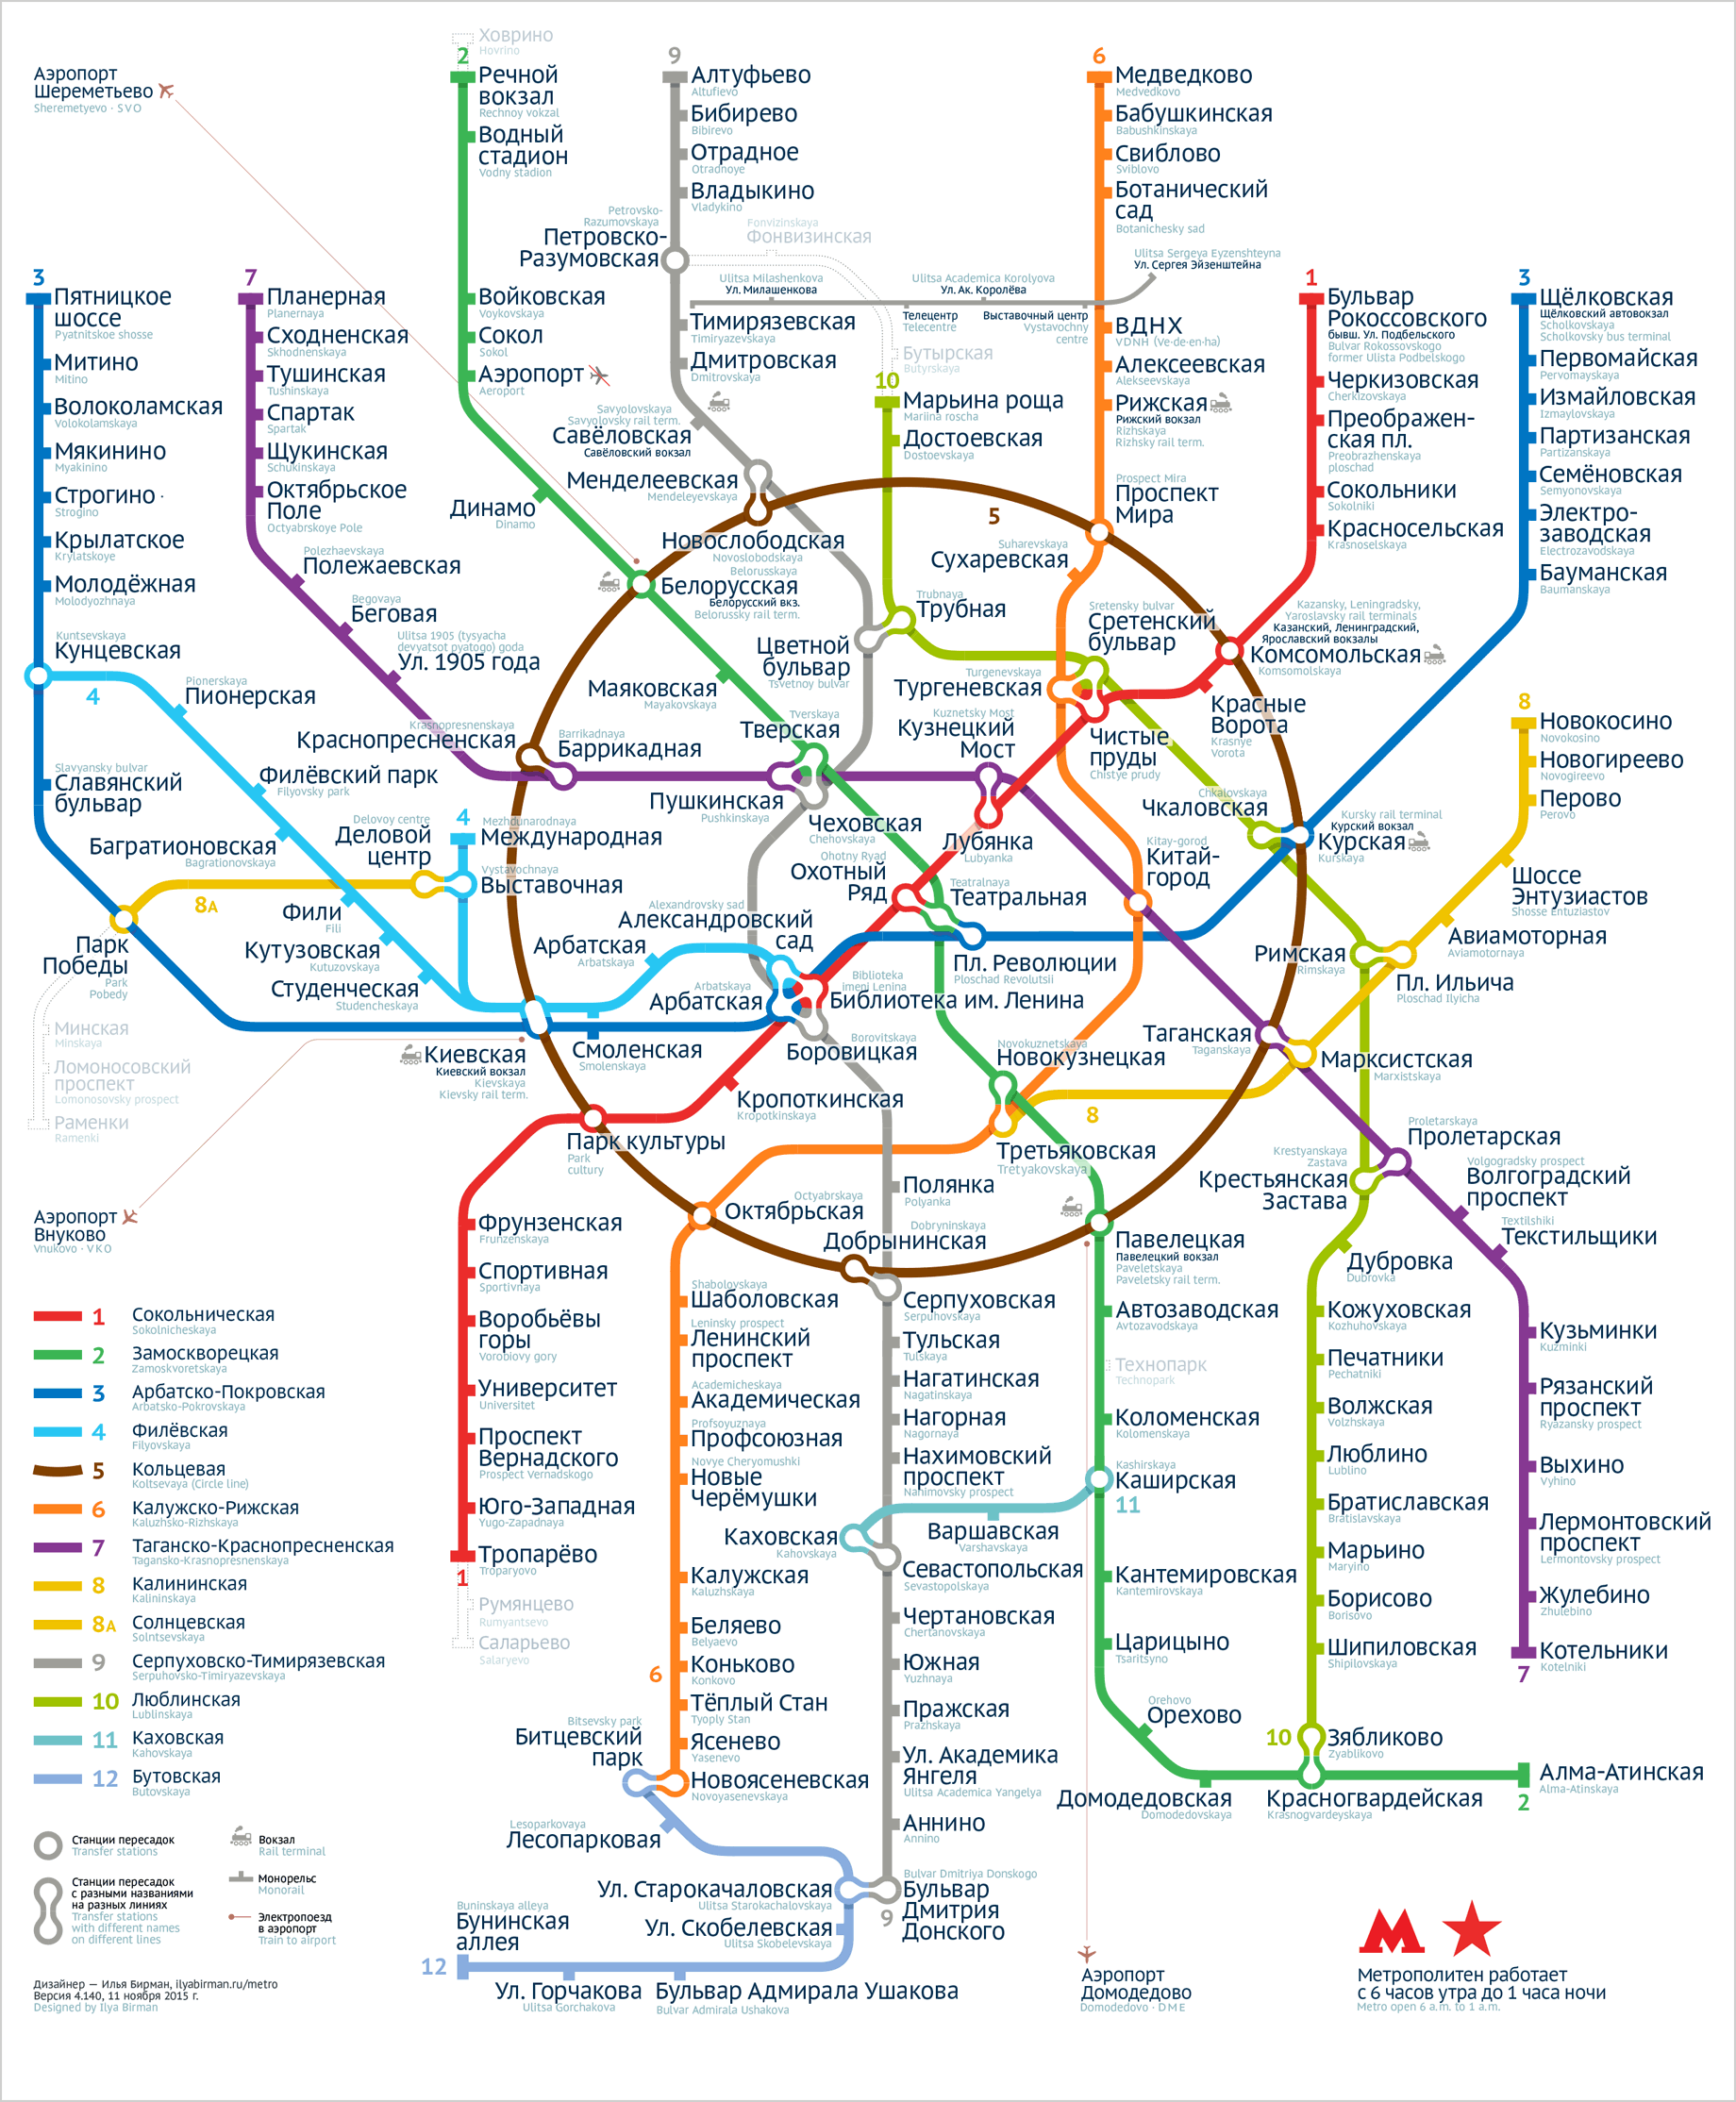 The fourth version of Moscow metro map